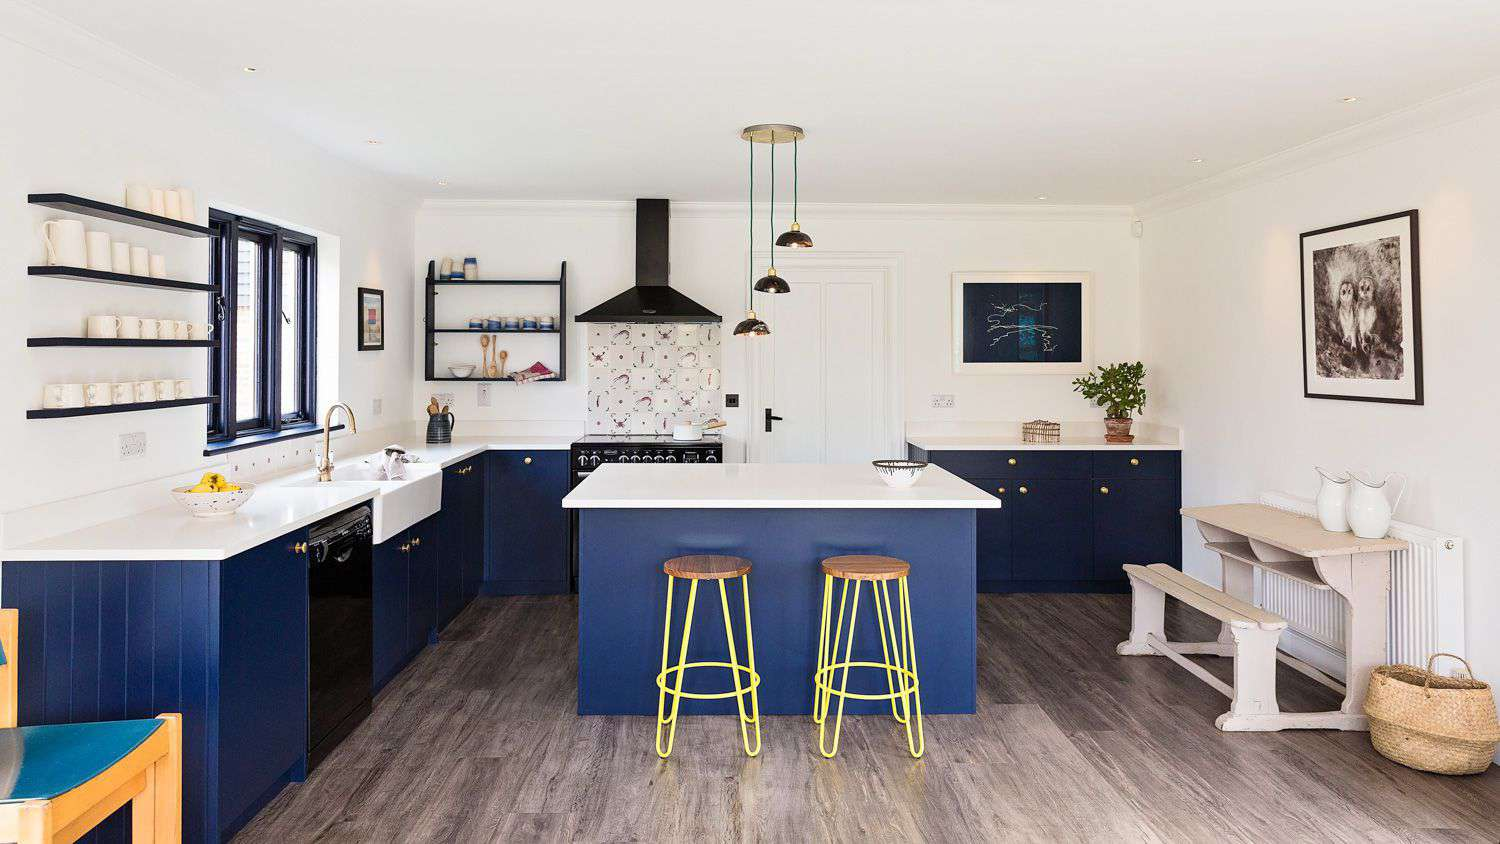 White kitchen with bright blue island and cabinets.